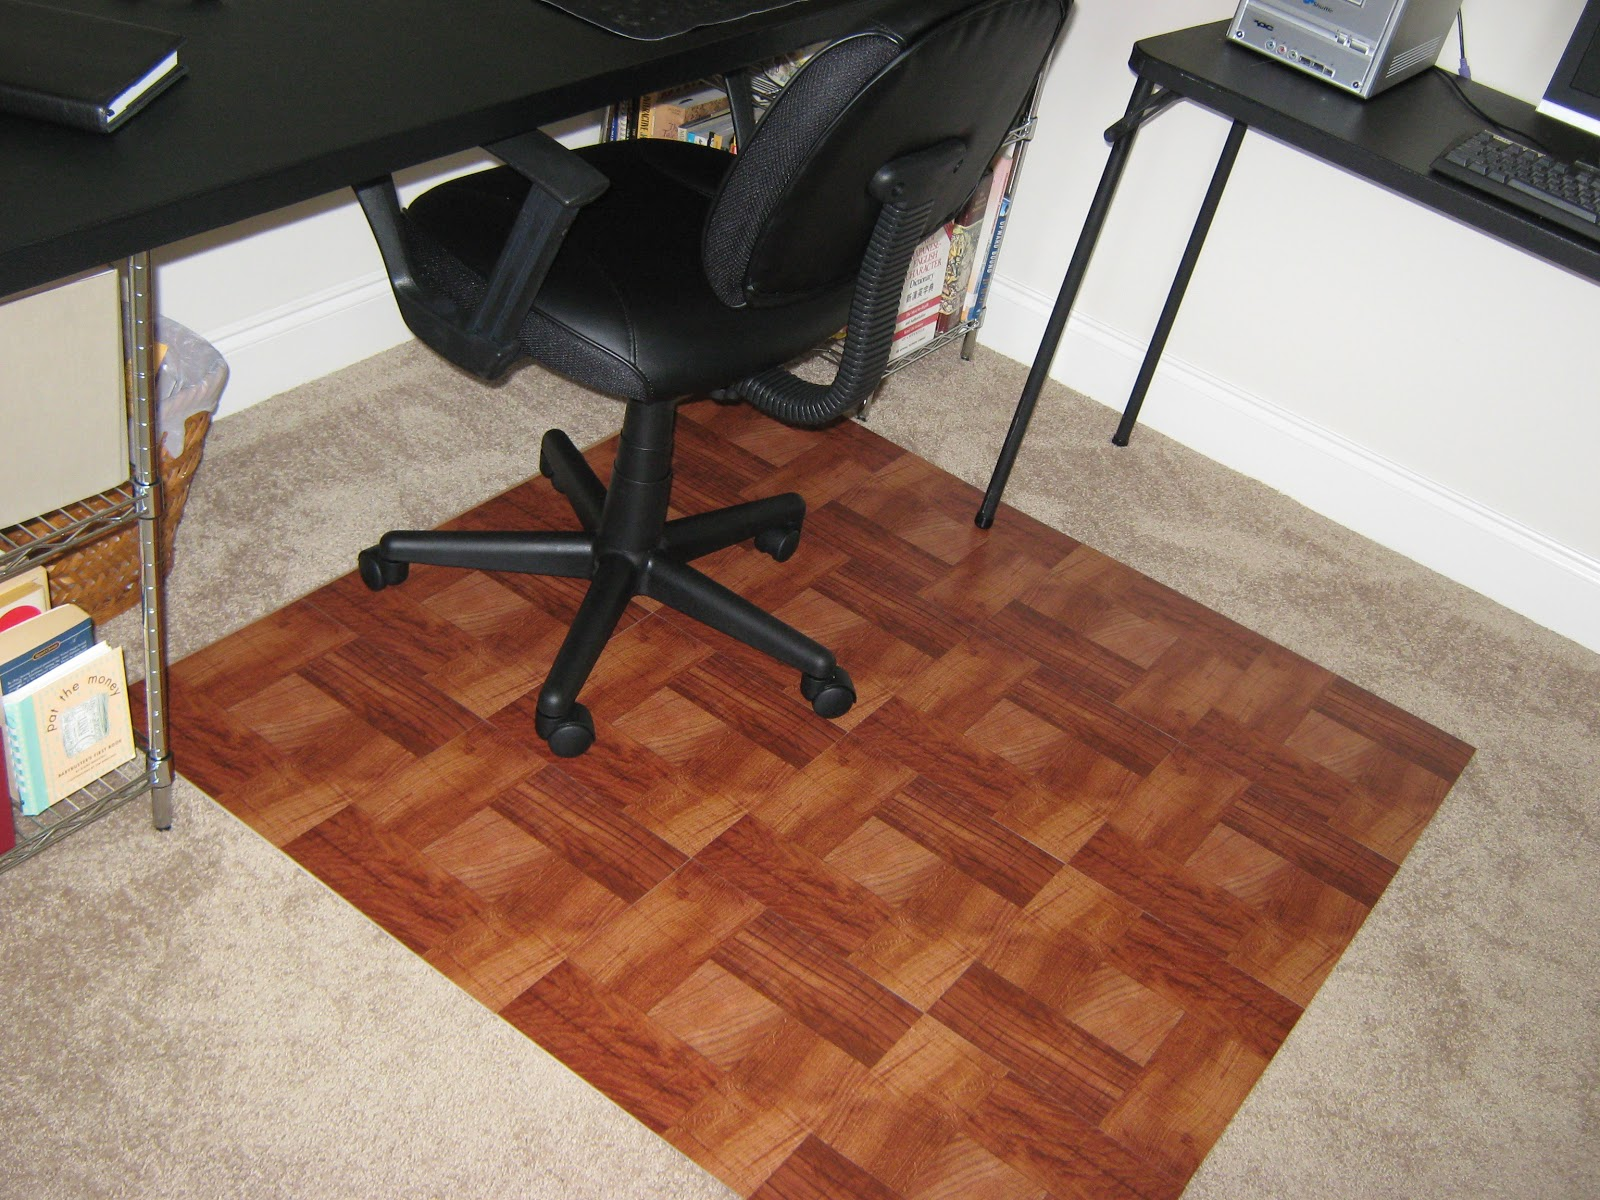 Fake It Frugal DIY Wooden Office Chair Mat